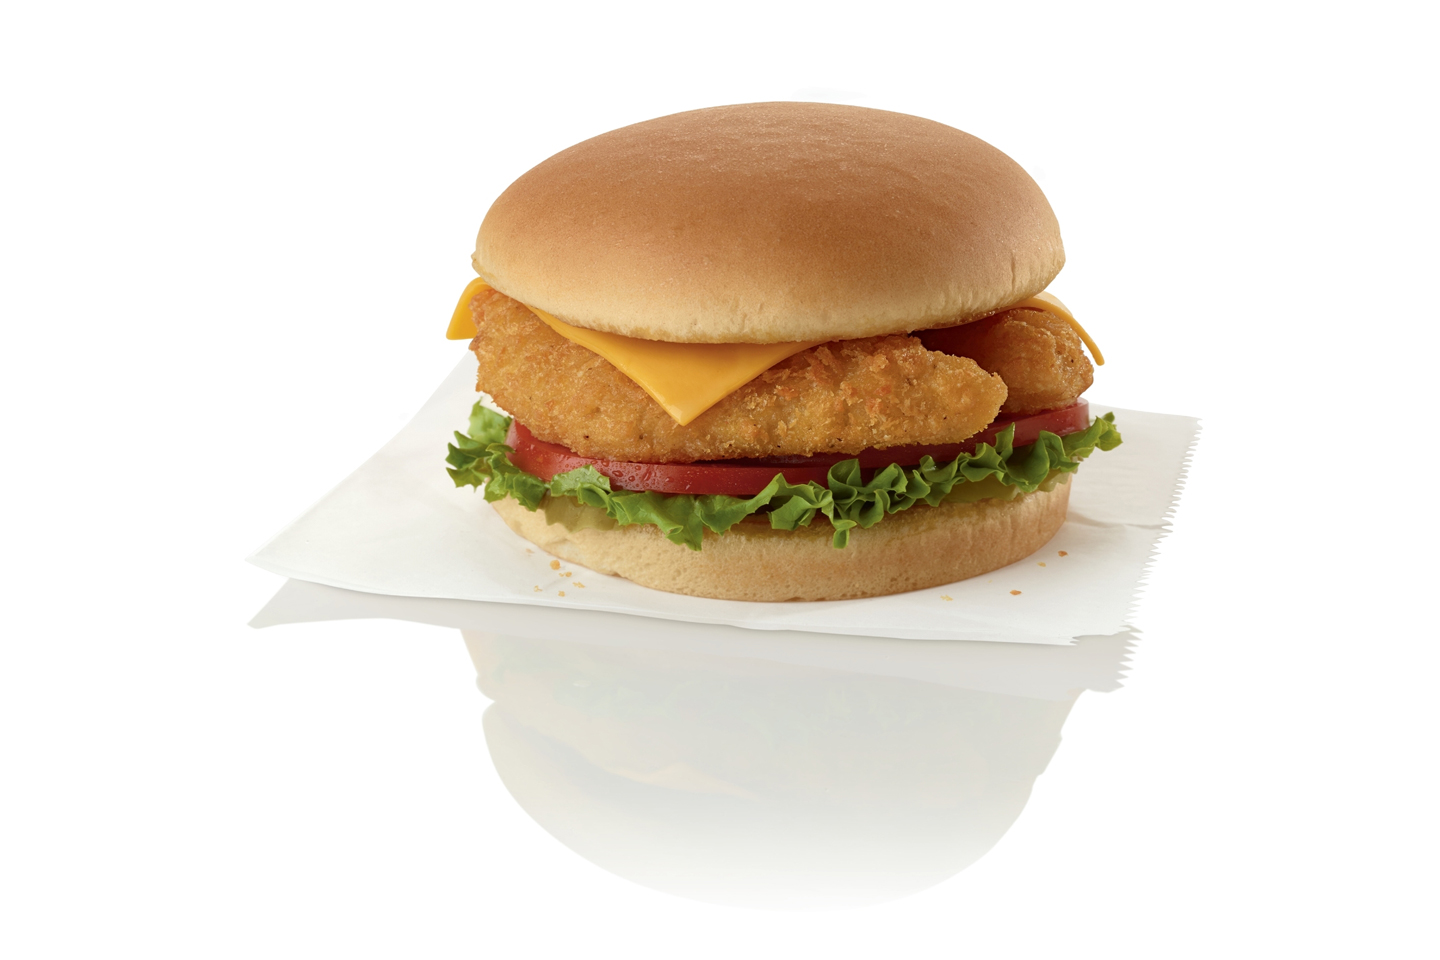 How much is a fish sandwich at burger king best burger 2017 for Wendy s fish sandwich 2017